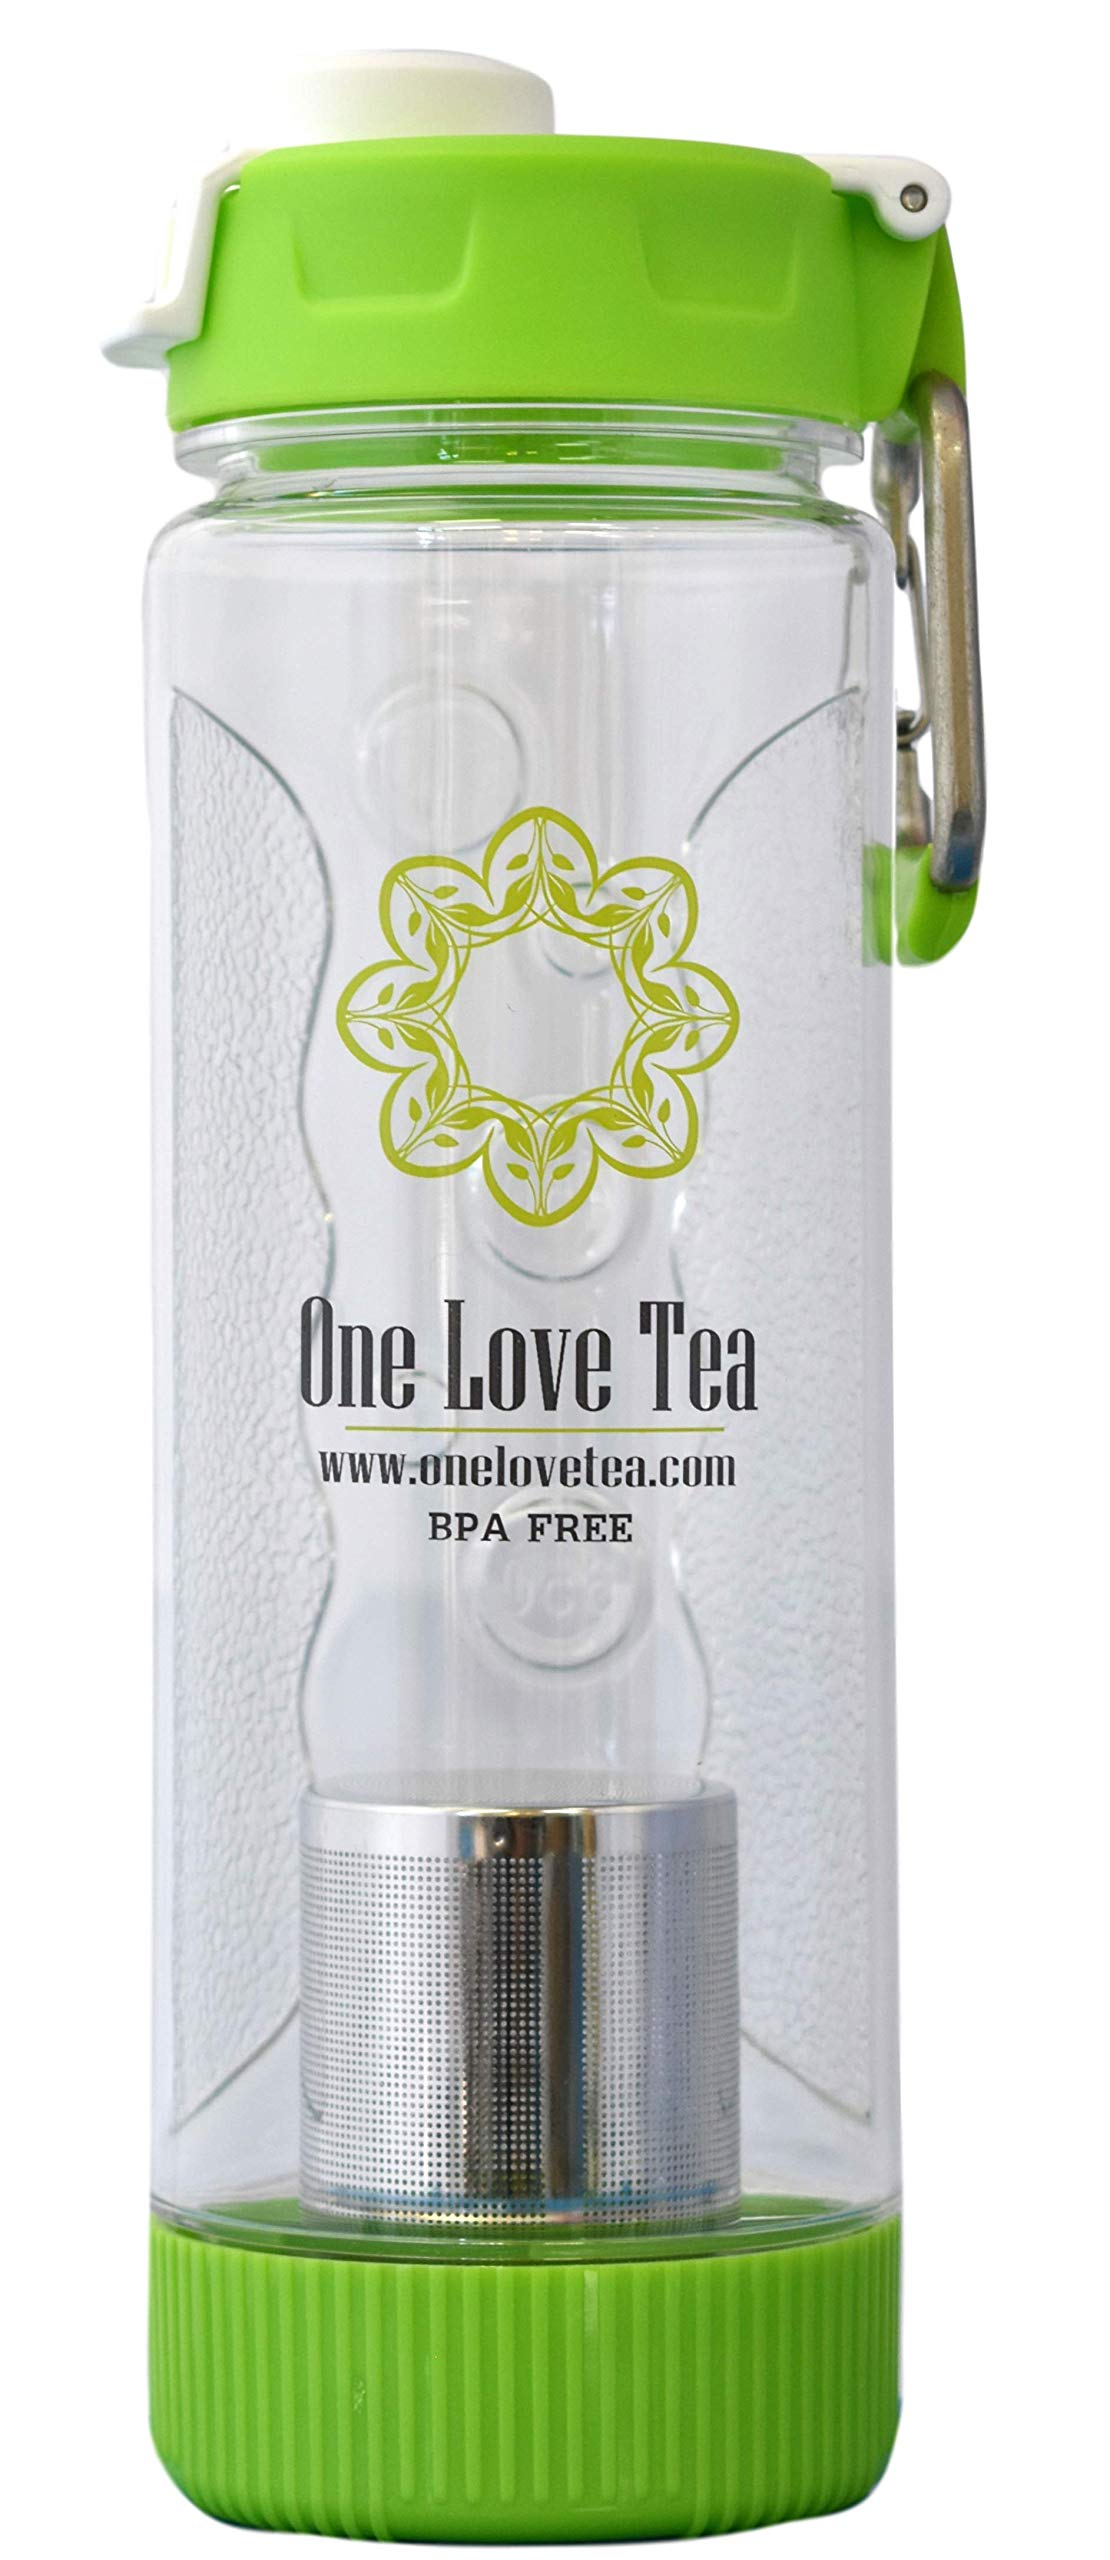 One Love Cold Brew Tea Infuser Bottle by One Love Tea